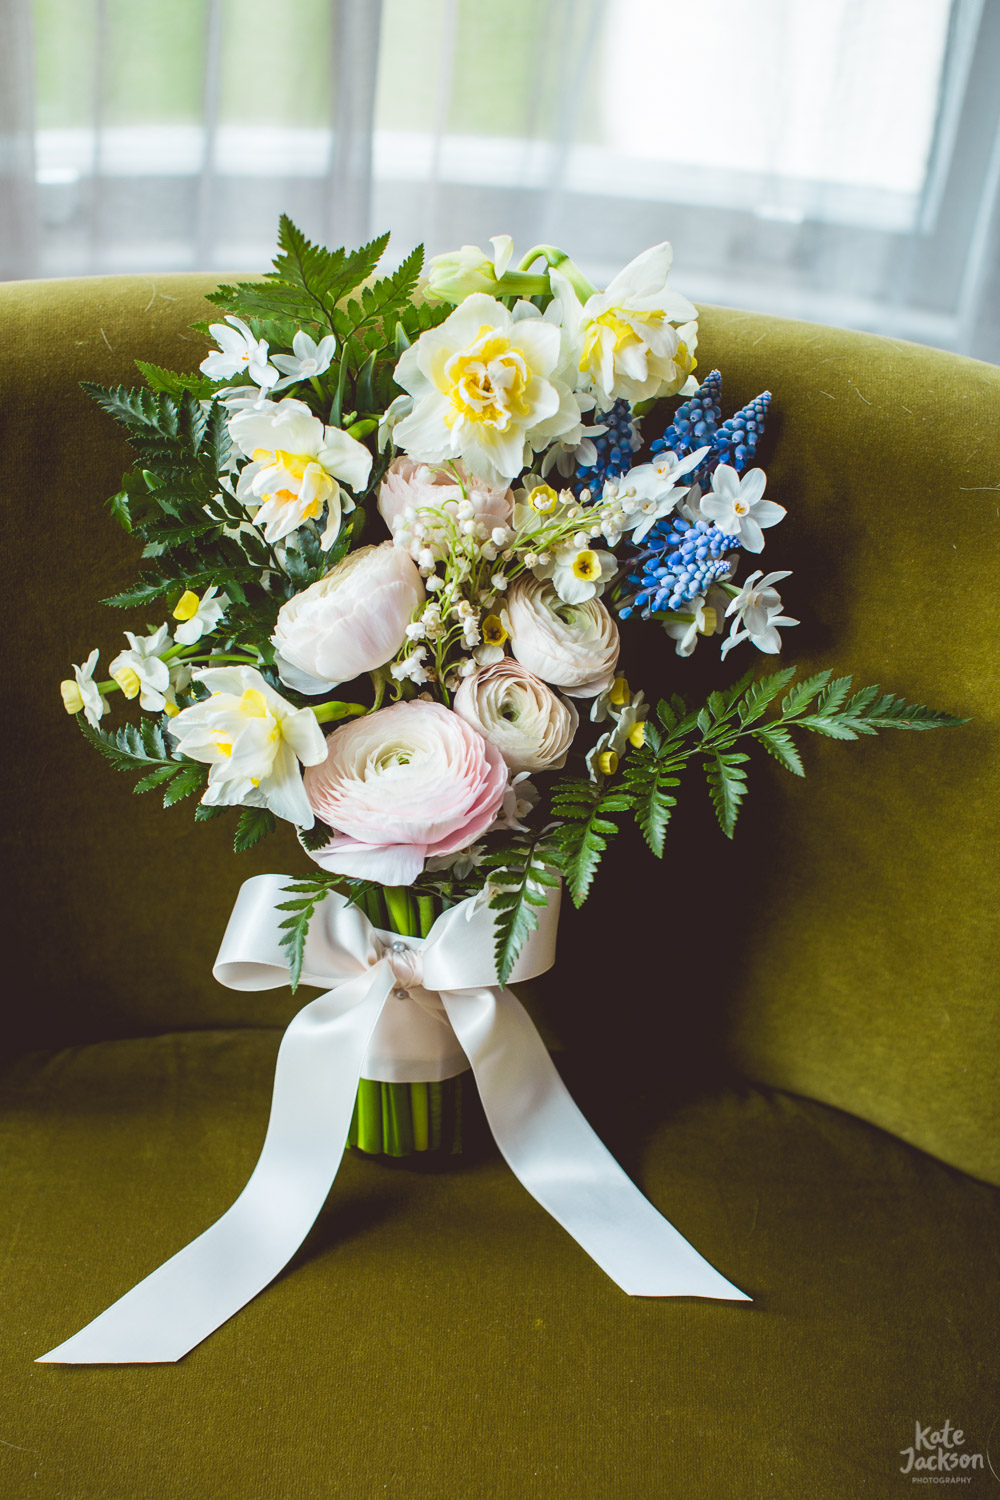 Isherwood & Co Spring Bouquet at Blackfriars Priory Gloucester